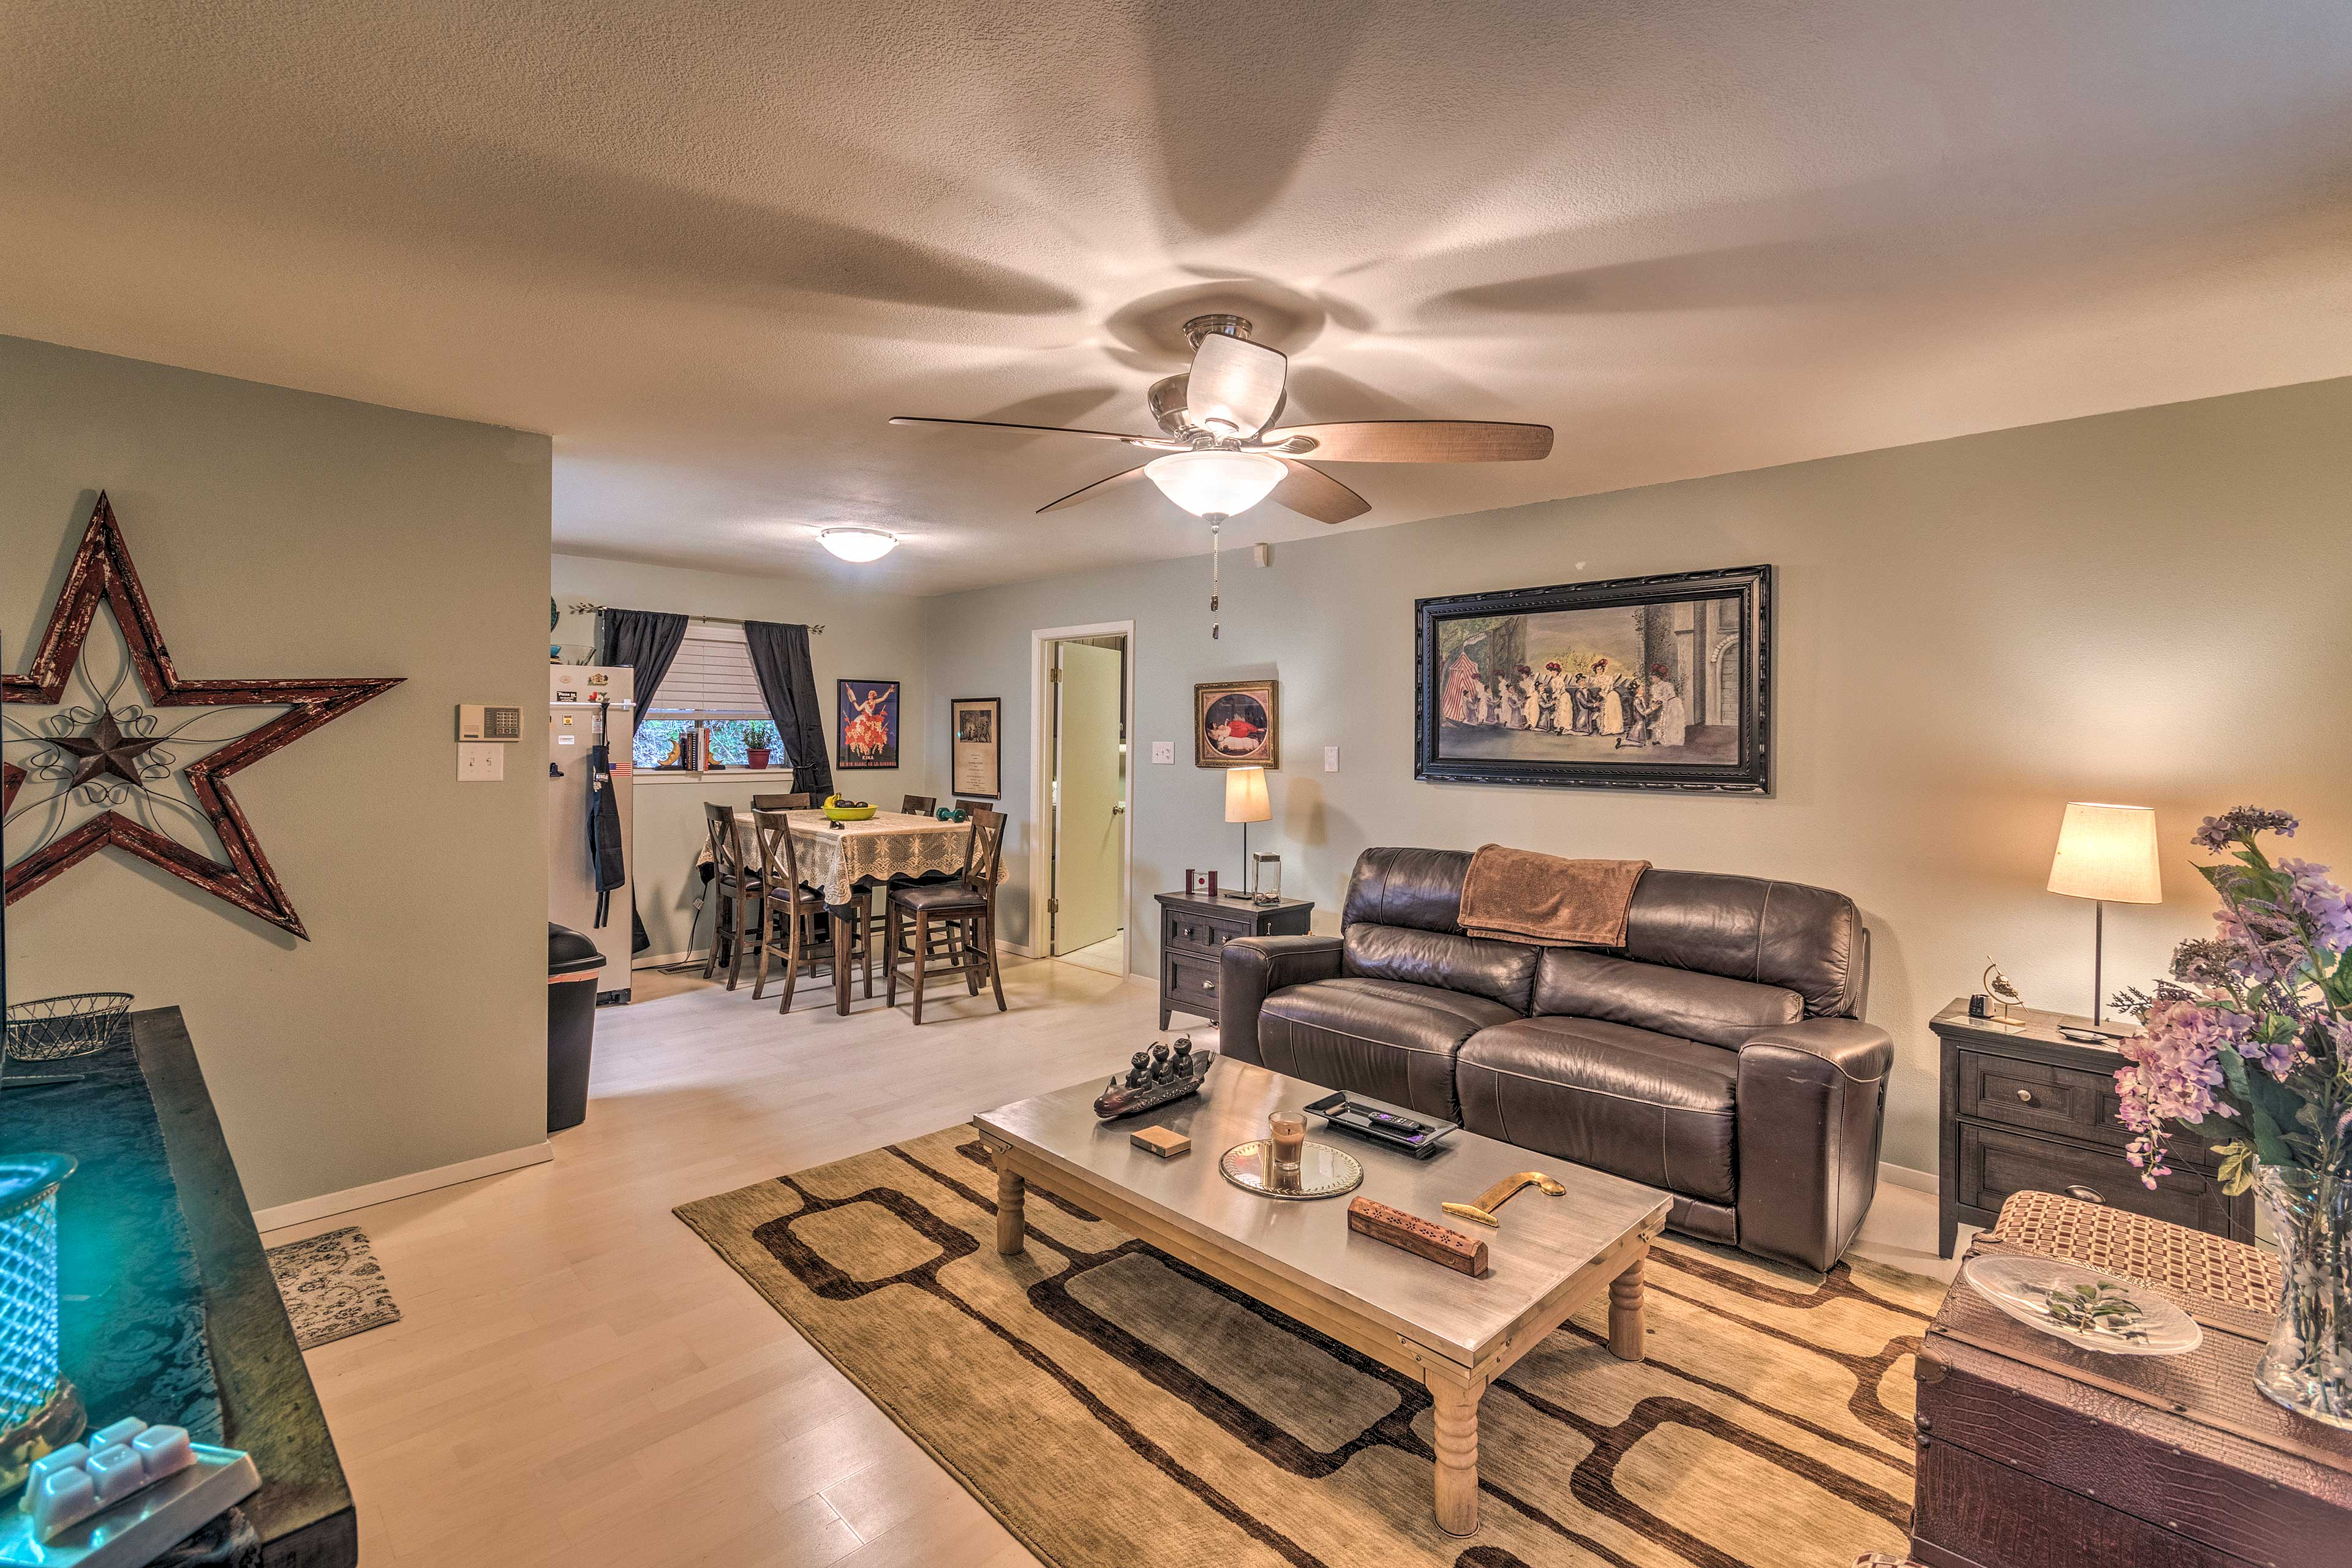 Book a trip to this 3-bedroom, 1-bathroom vacation rental home in Hot Springs.